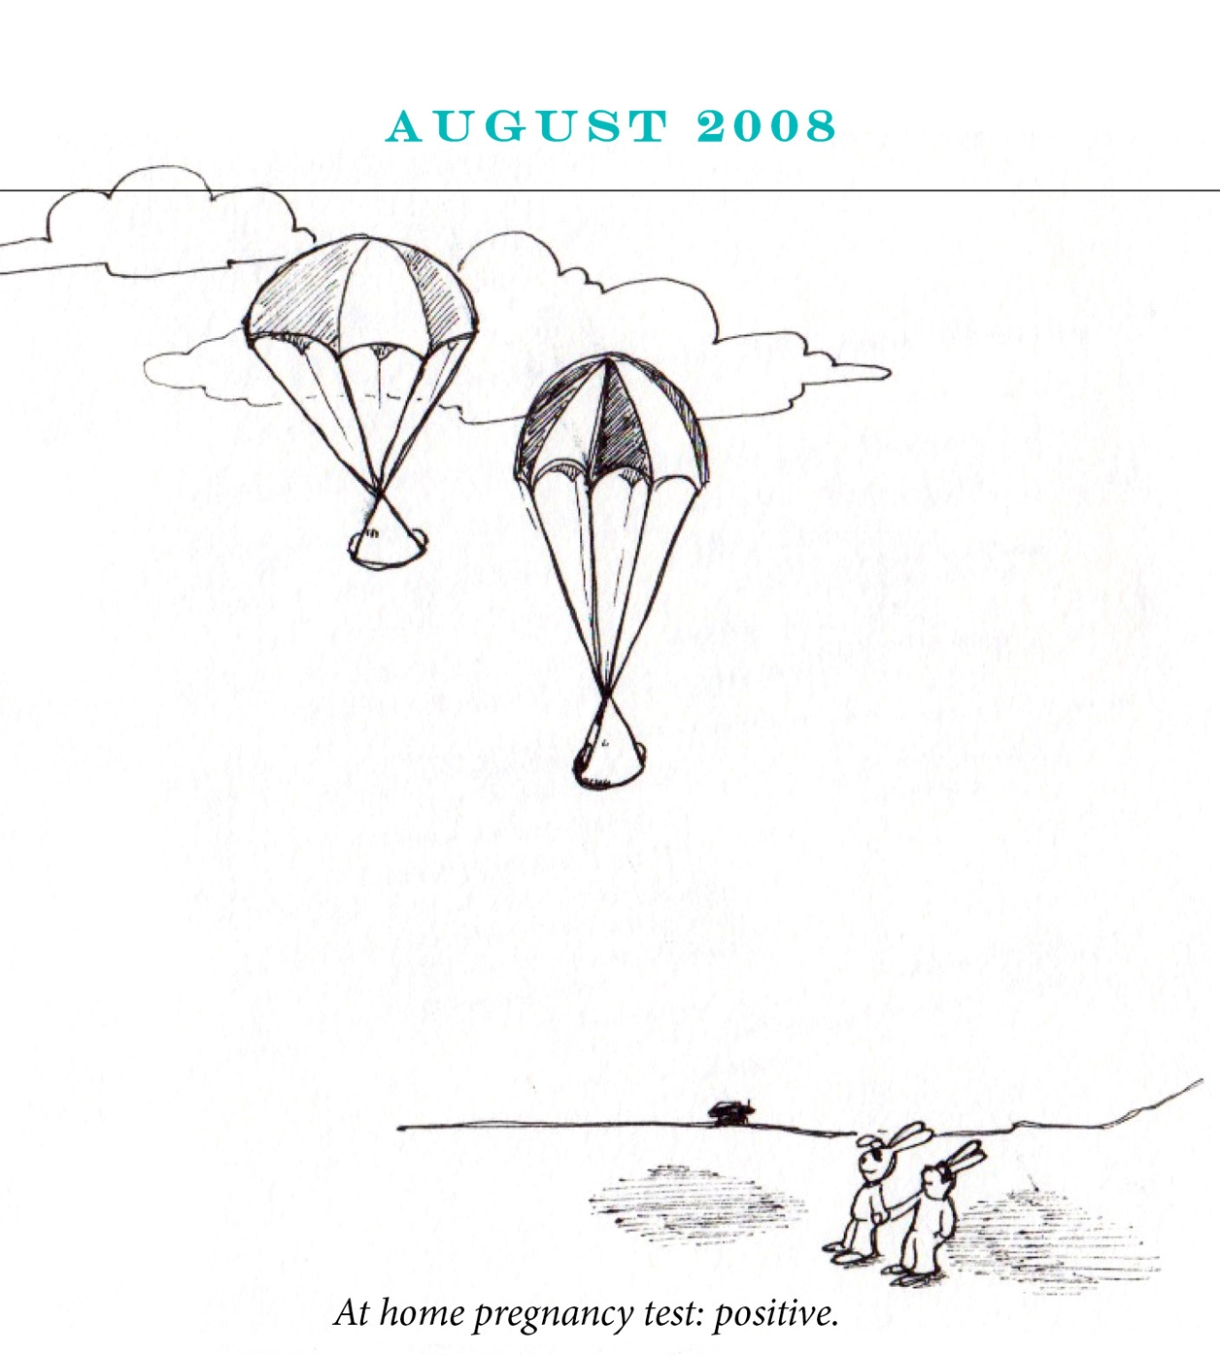 """August 2008 Image description: Two rabbits hold hands looking up at the sky, where two baby bundles float down from parachutes. Caption: """"At home pregnancy test: positive."""""""